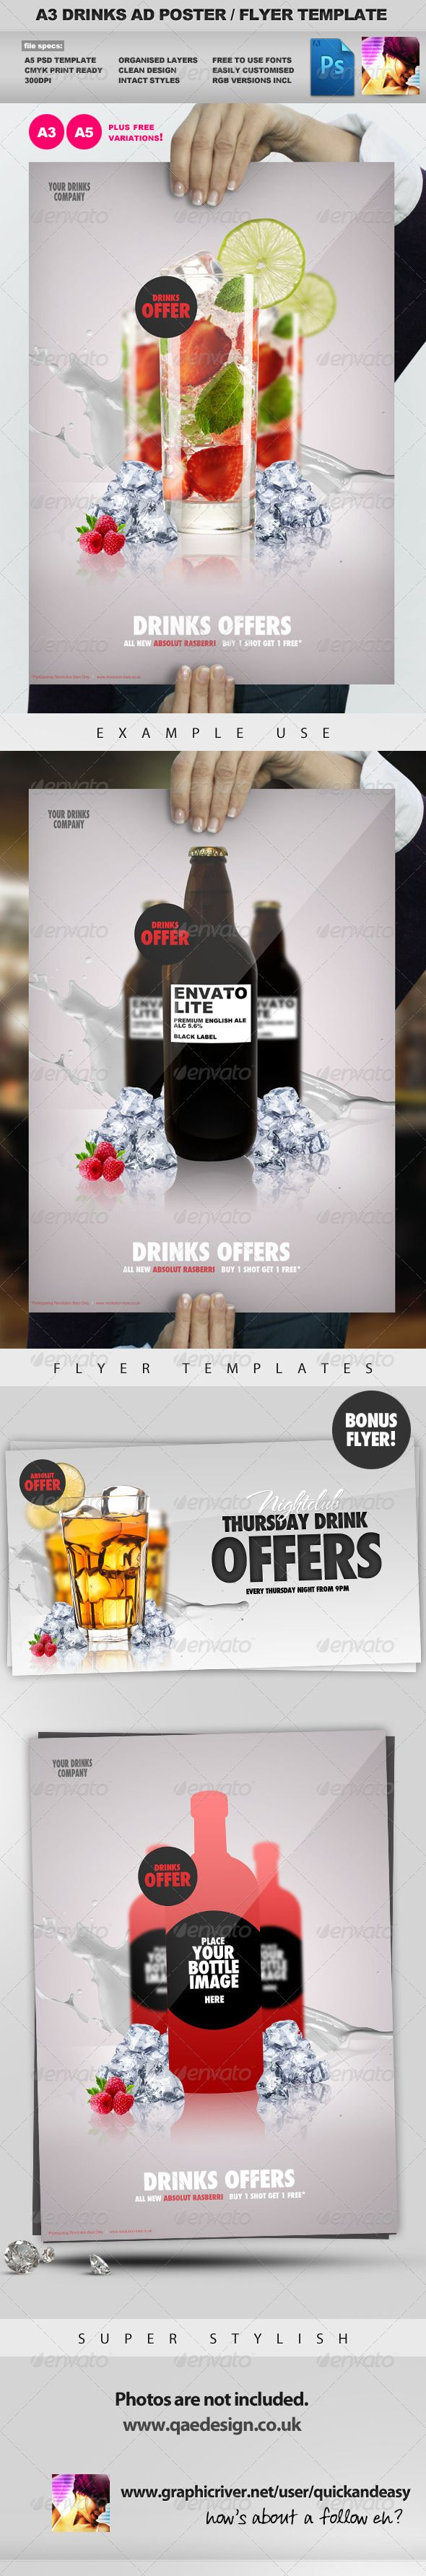 Advertising Poster Templates Brilliant A3 Drinks Promotion Advertisement Poster Template  Pinterest .